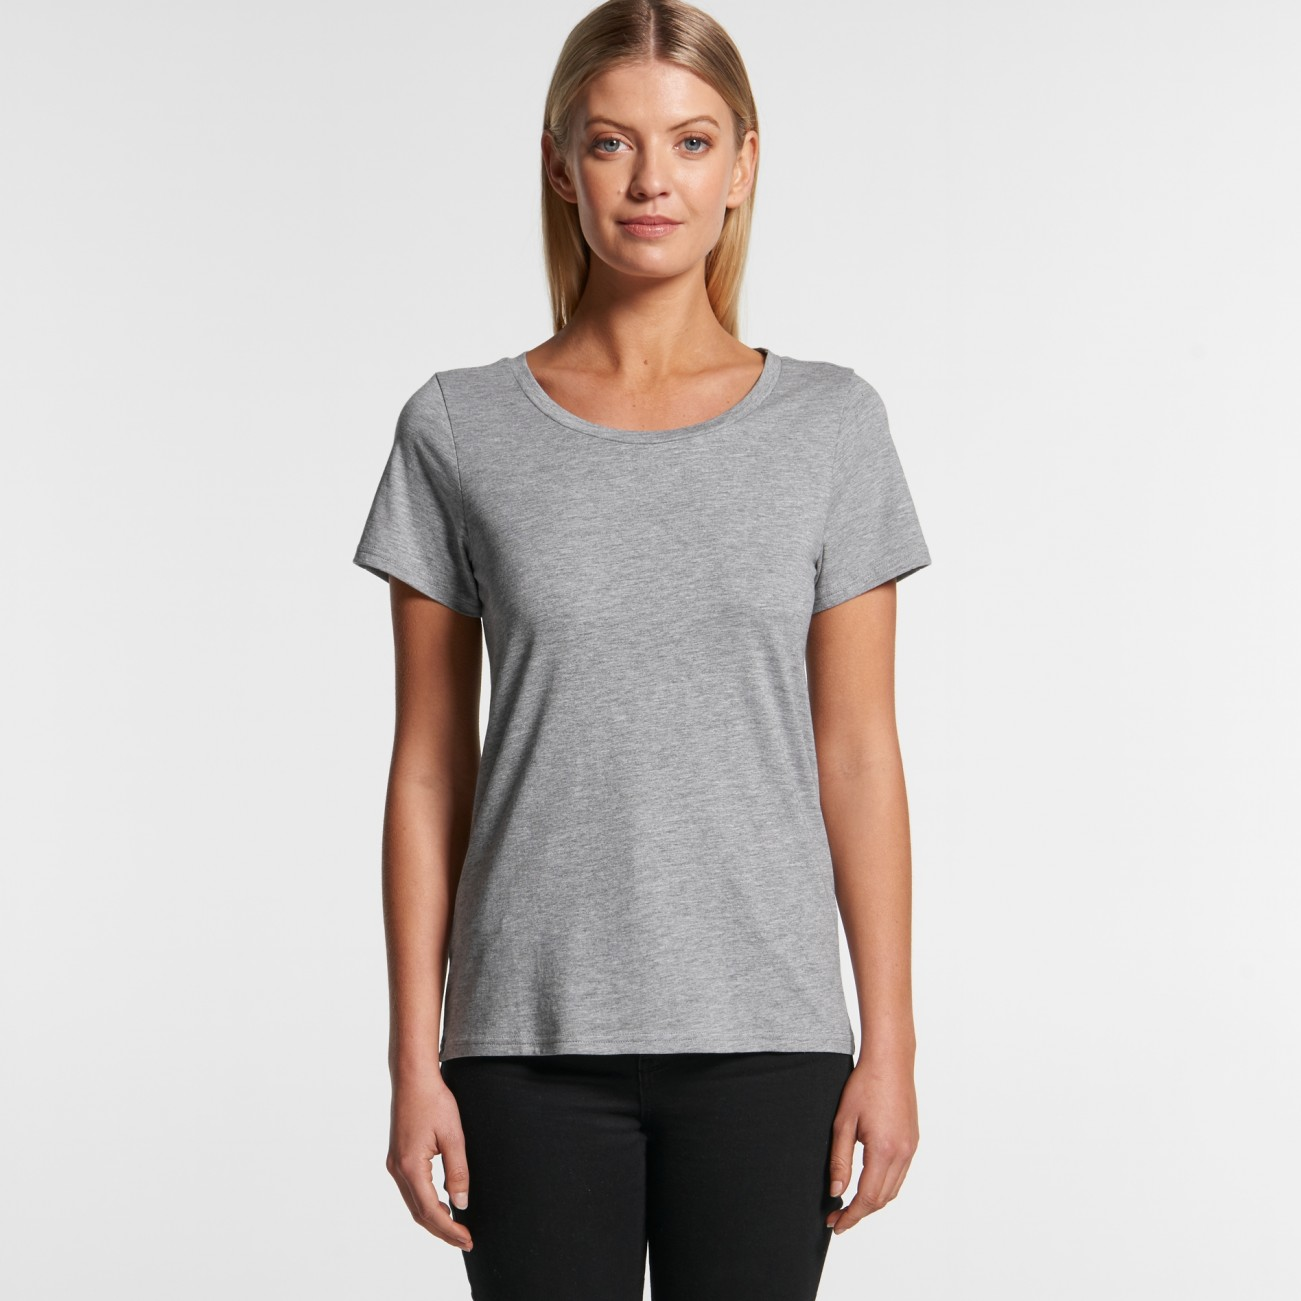 4011 WOMENS SHALLOW SCOOP TEE